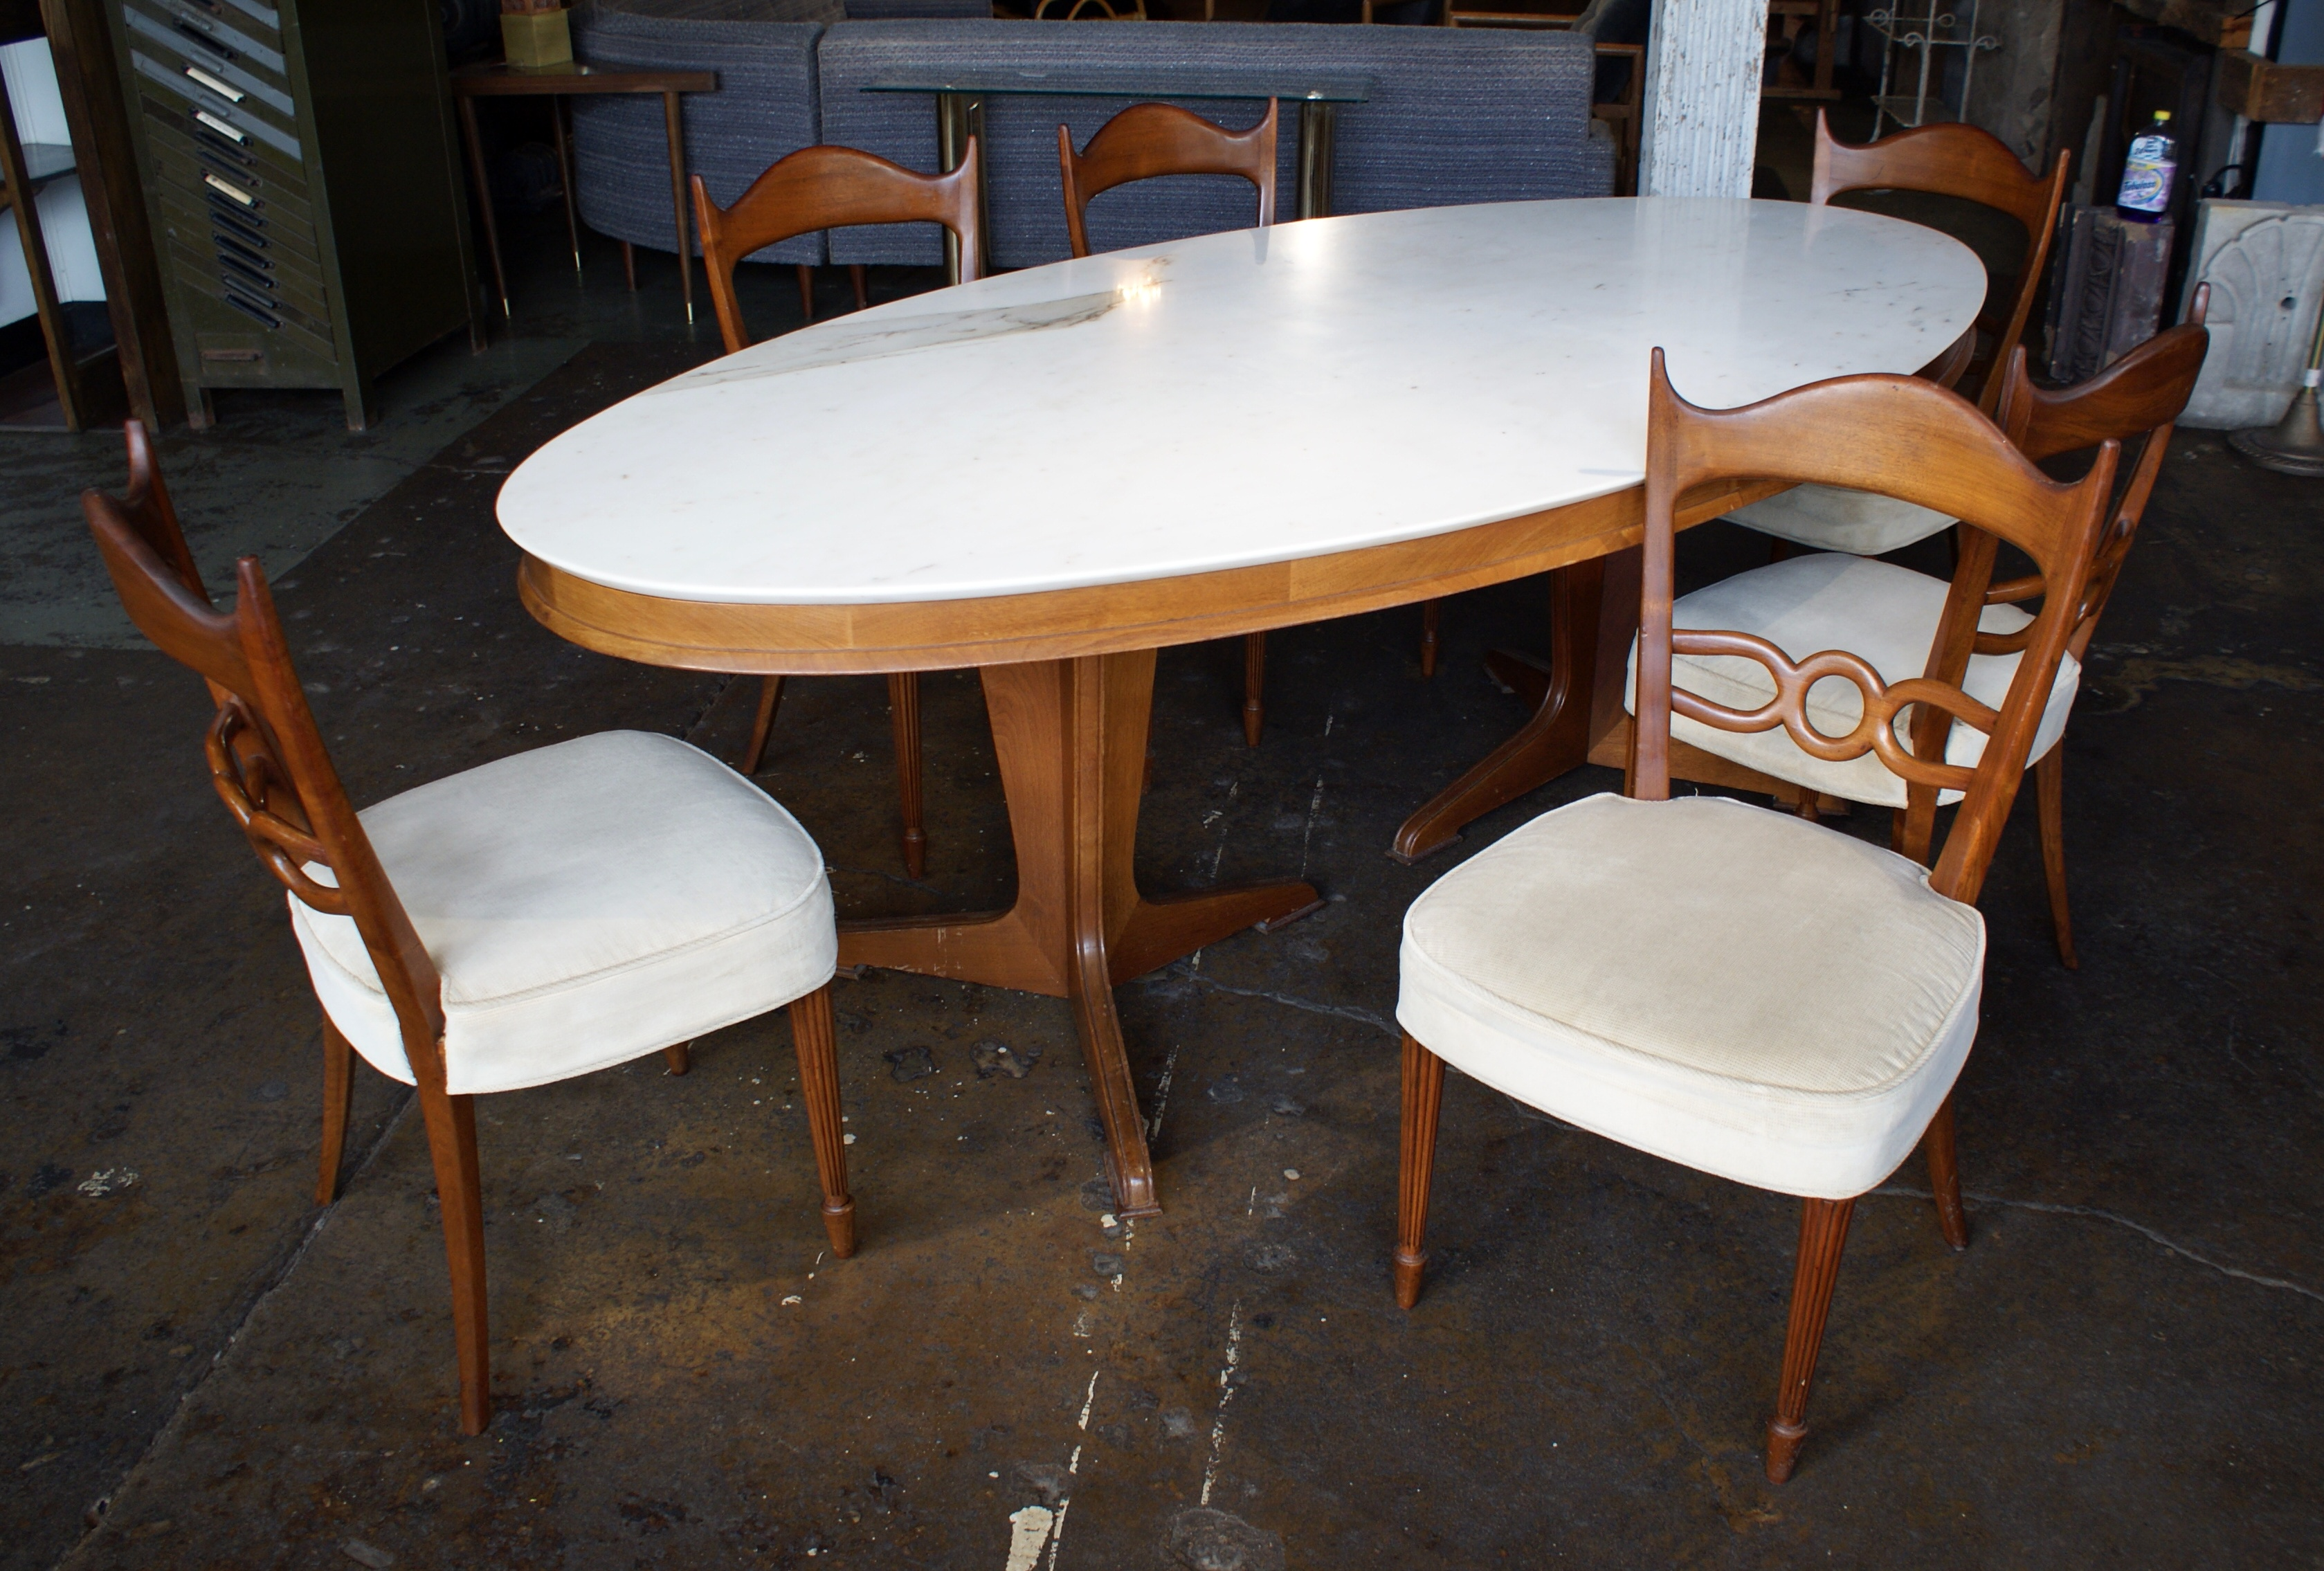 Custom italian marble top oval dining table w 6 chairs for Custom made marble dining tables